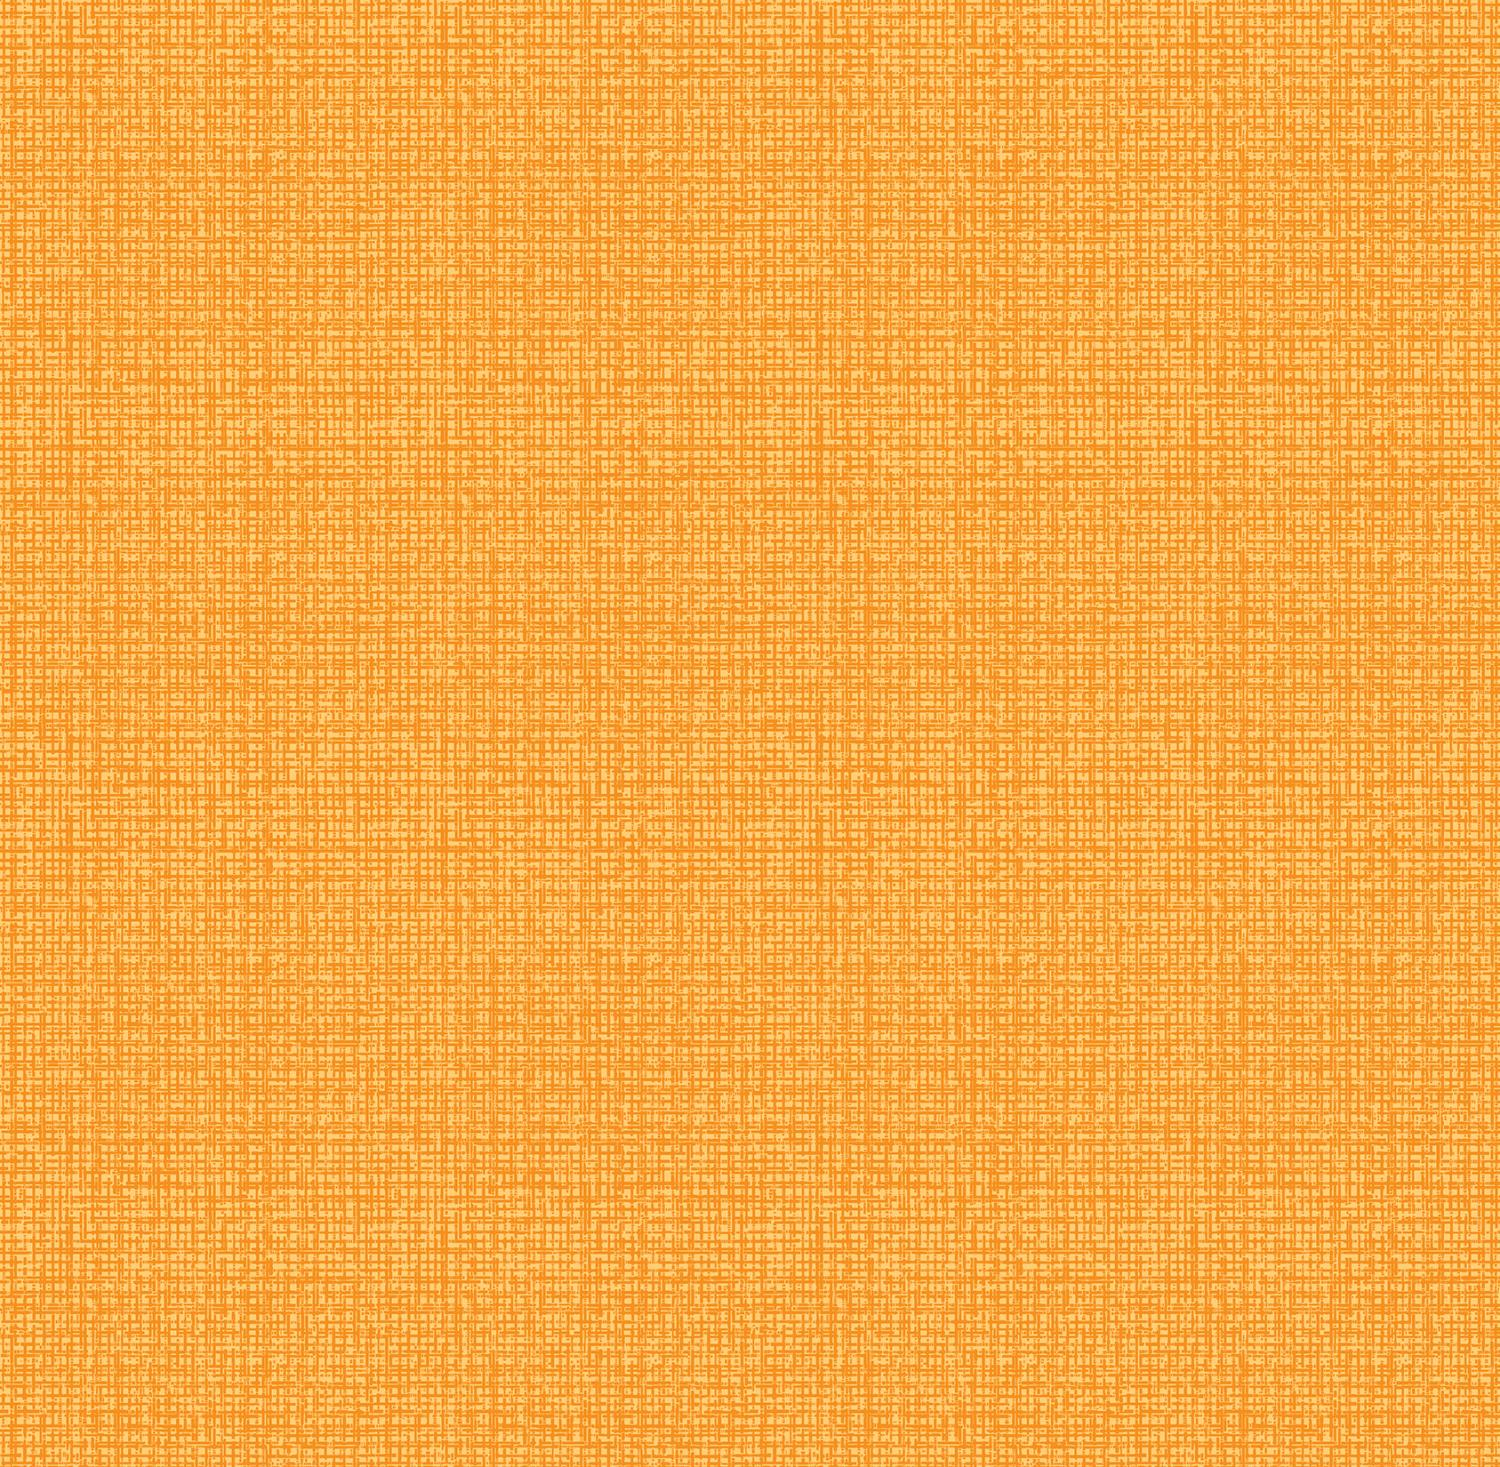 Color Weave #36 Medium Orange